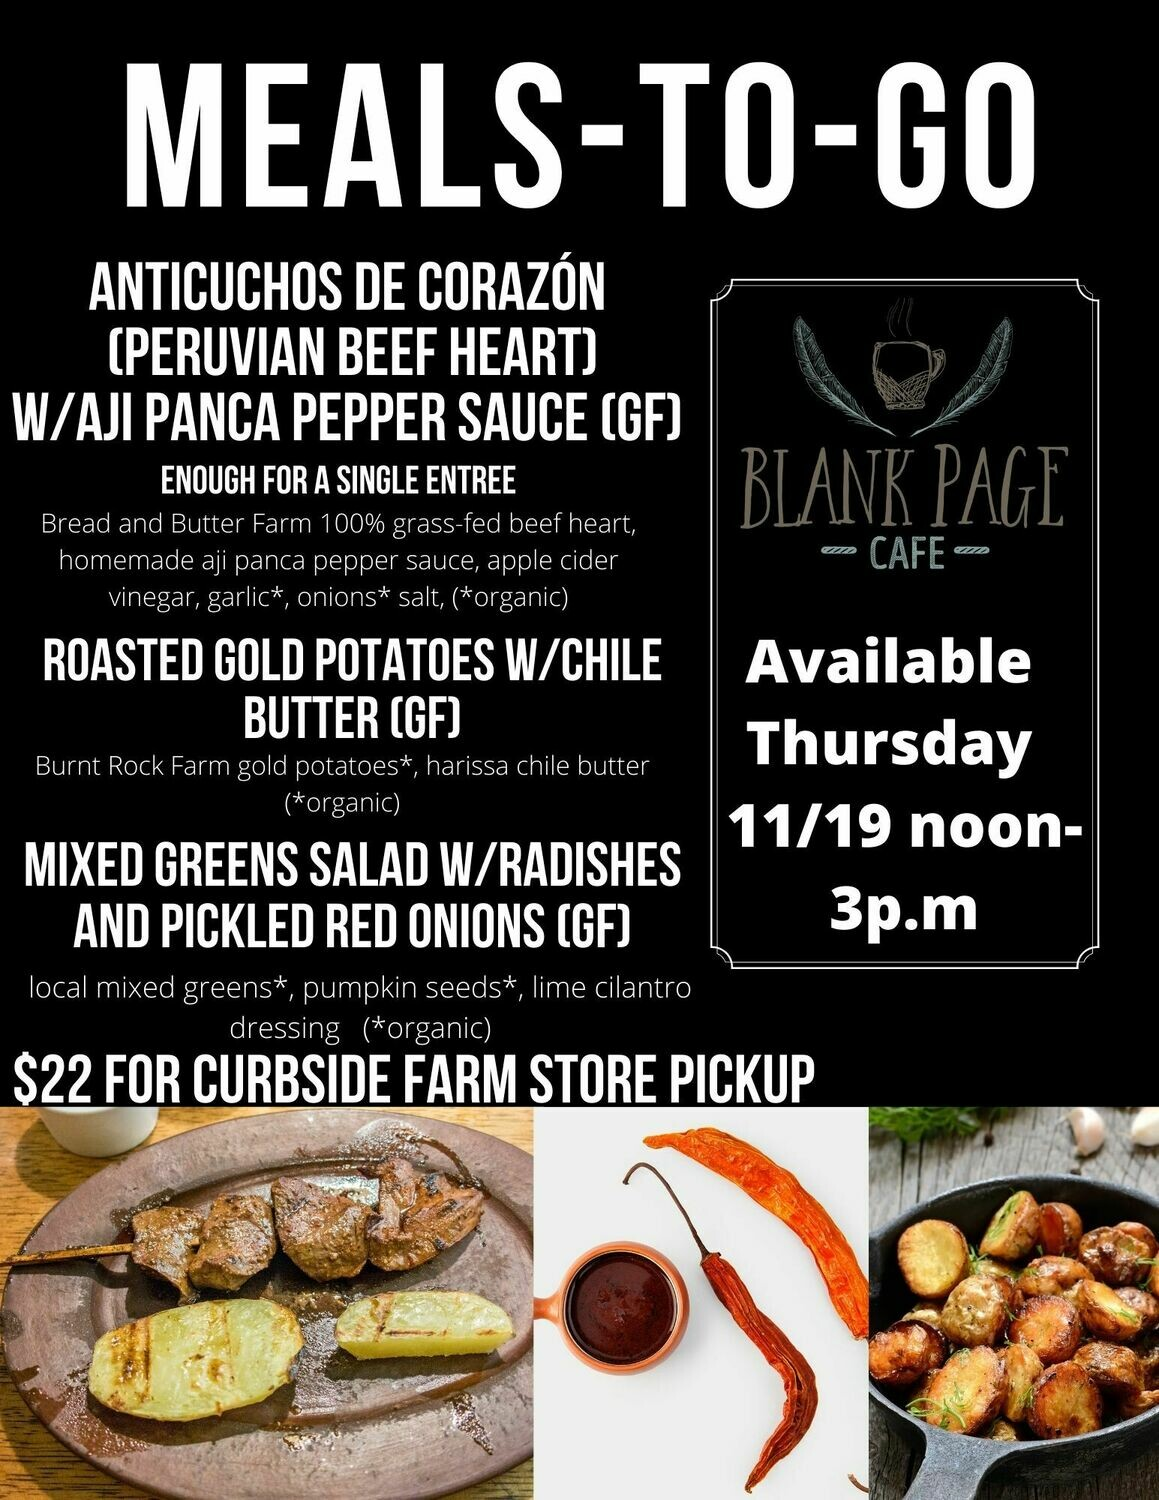 Thursday 11/19 NOON - 3PM PICKUP - Anticuchos de Corazon (Peruvian Beef Heart) + Roasted Gold Potatoes w/Chile Butter + Mixed Greens Salad w/Lime Cilantro Vinaigrette